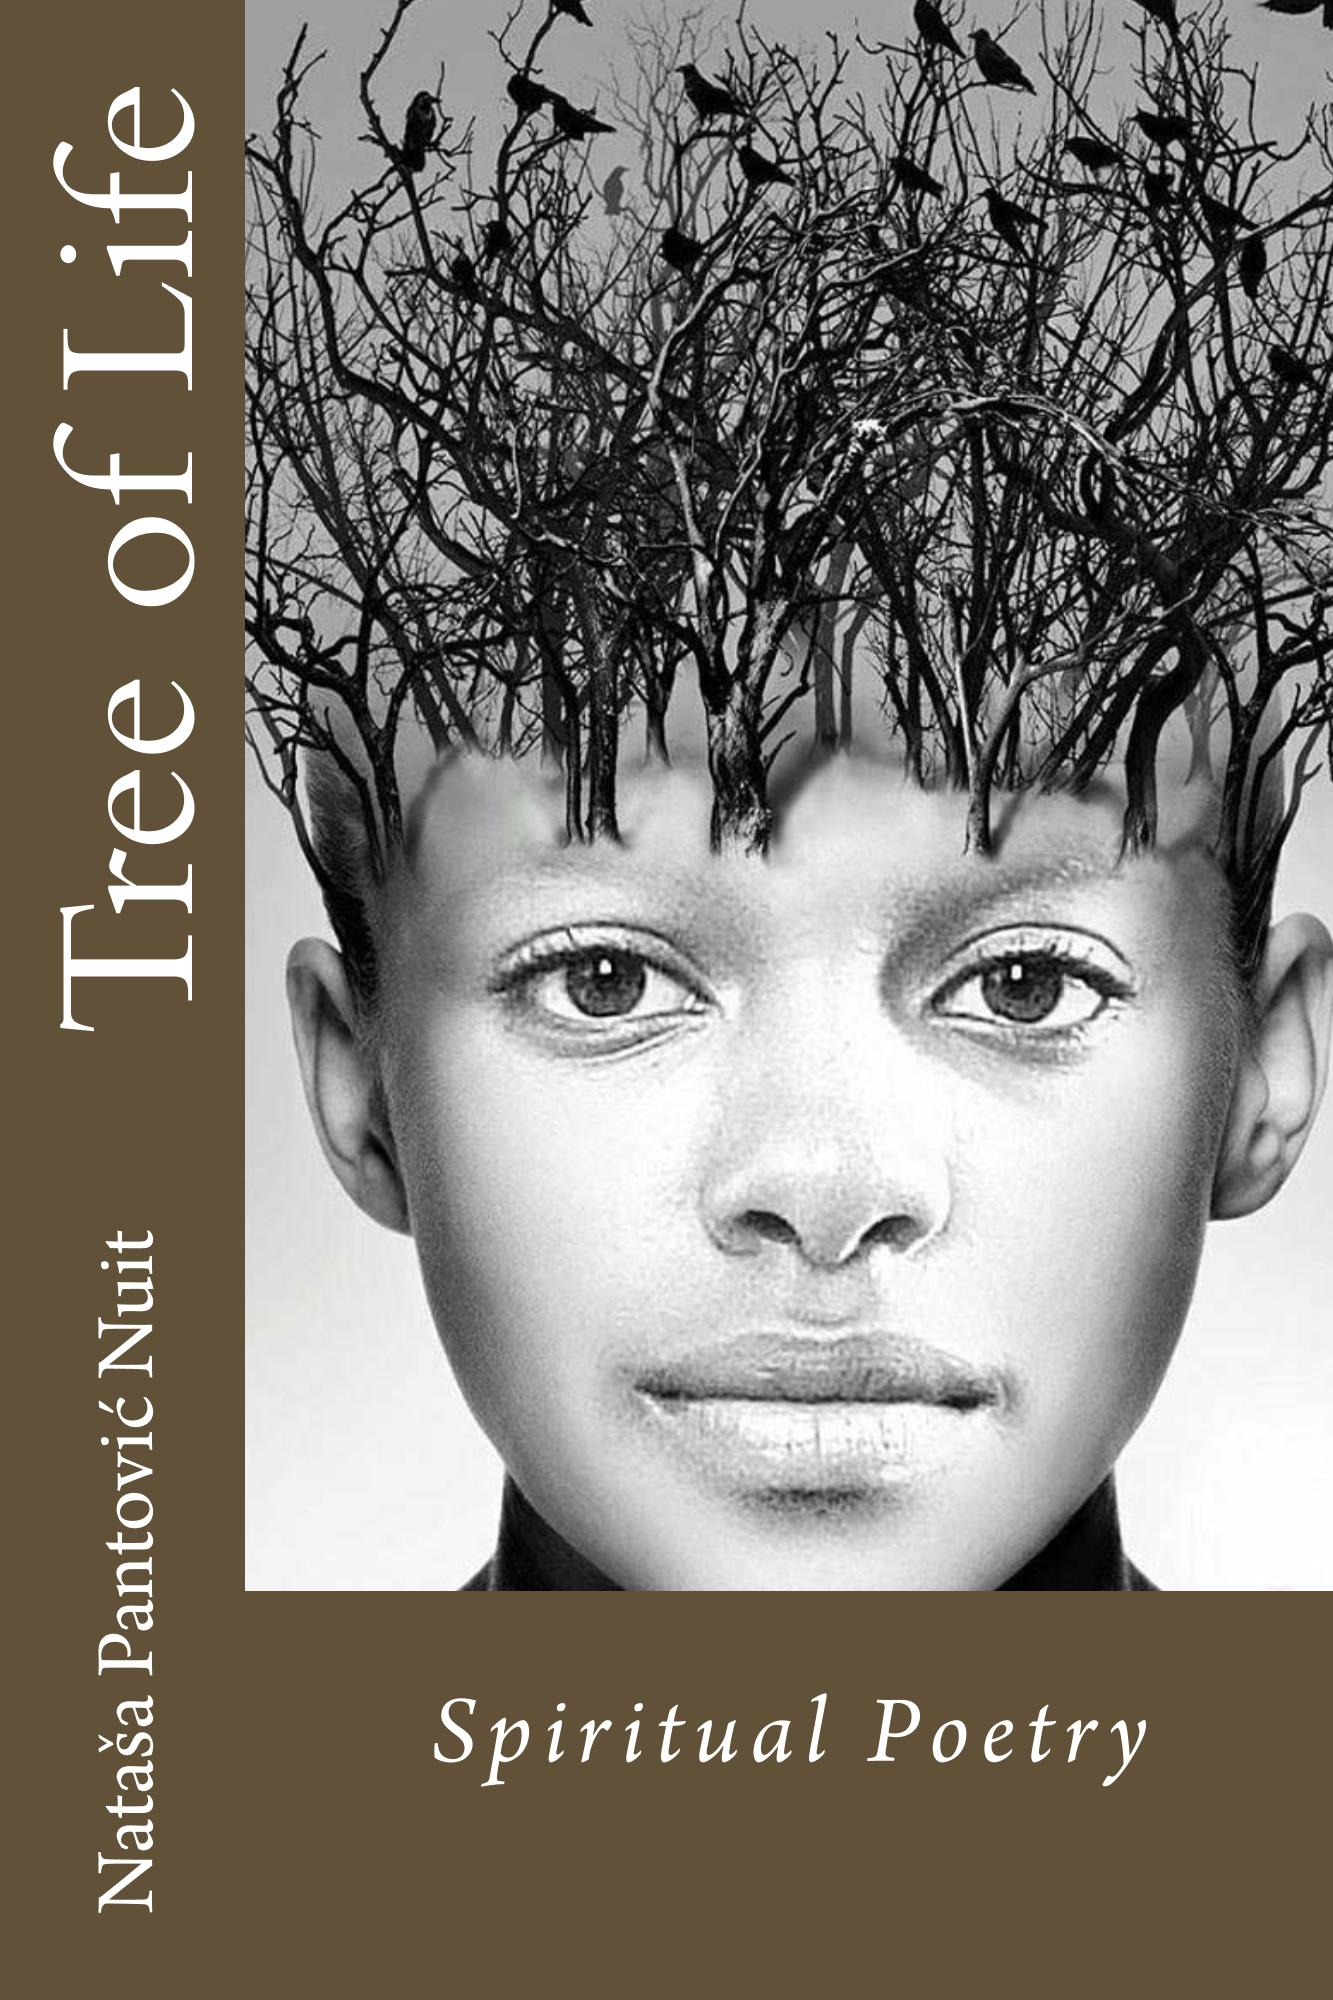 Tree of Life Book Image